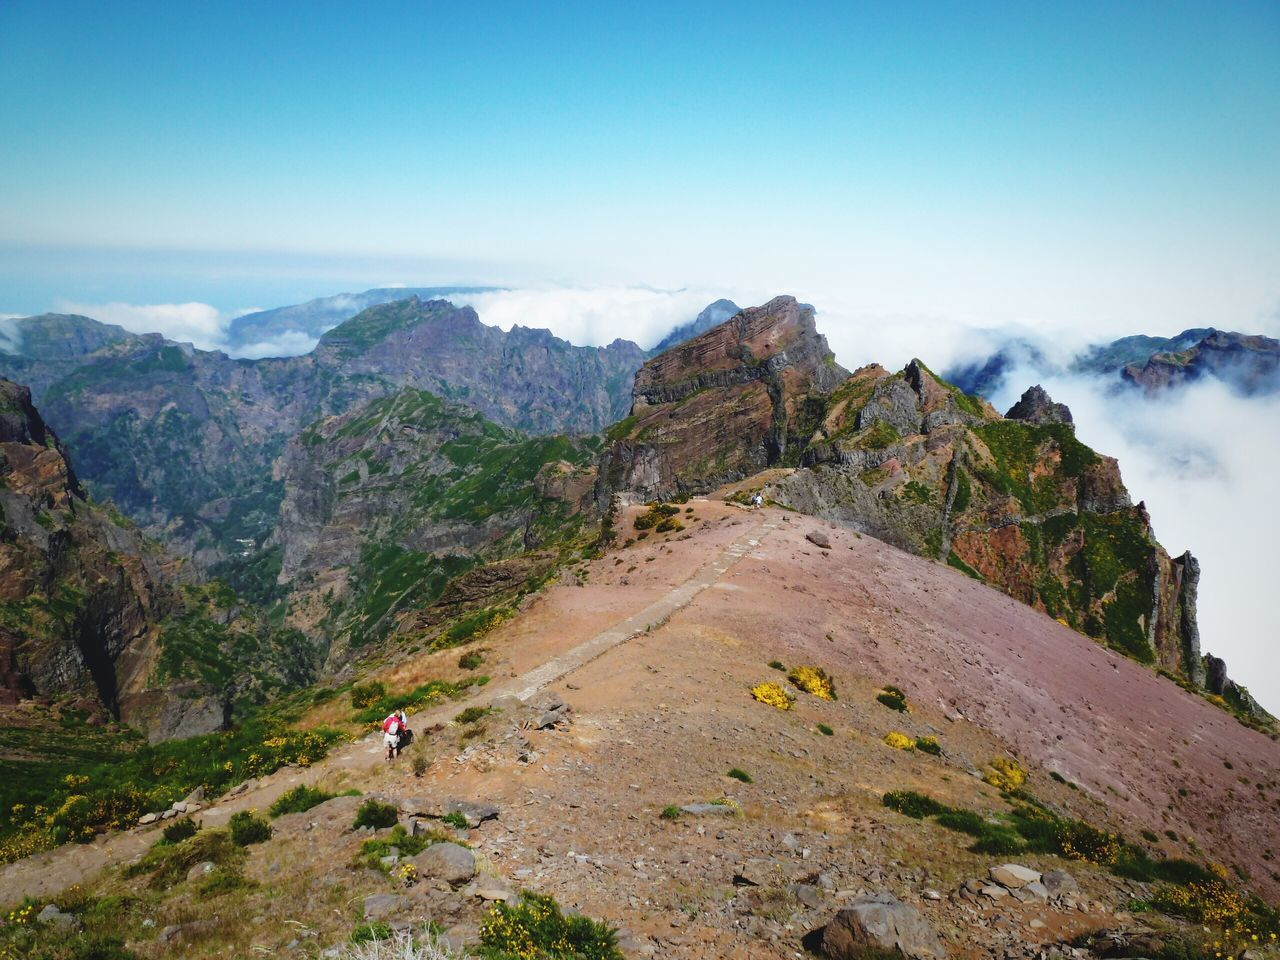 Mountains Mountain View Clouds Clouds And Sky Top Perspective Tranquility Landscape Nature Nature_collection Majestic Madeira Madeira Island Grassfield Plants Color Of Life Portugal Sky Stone Rock